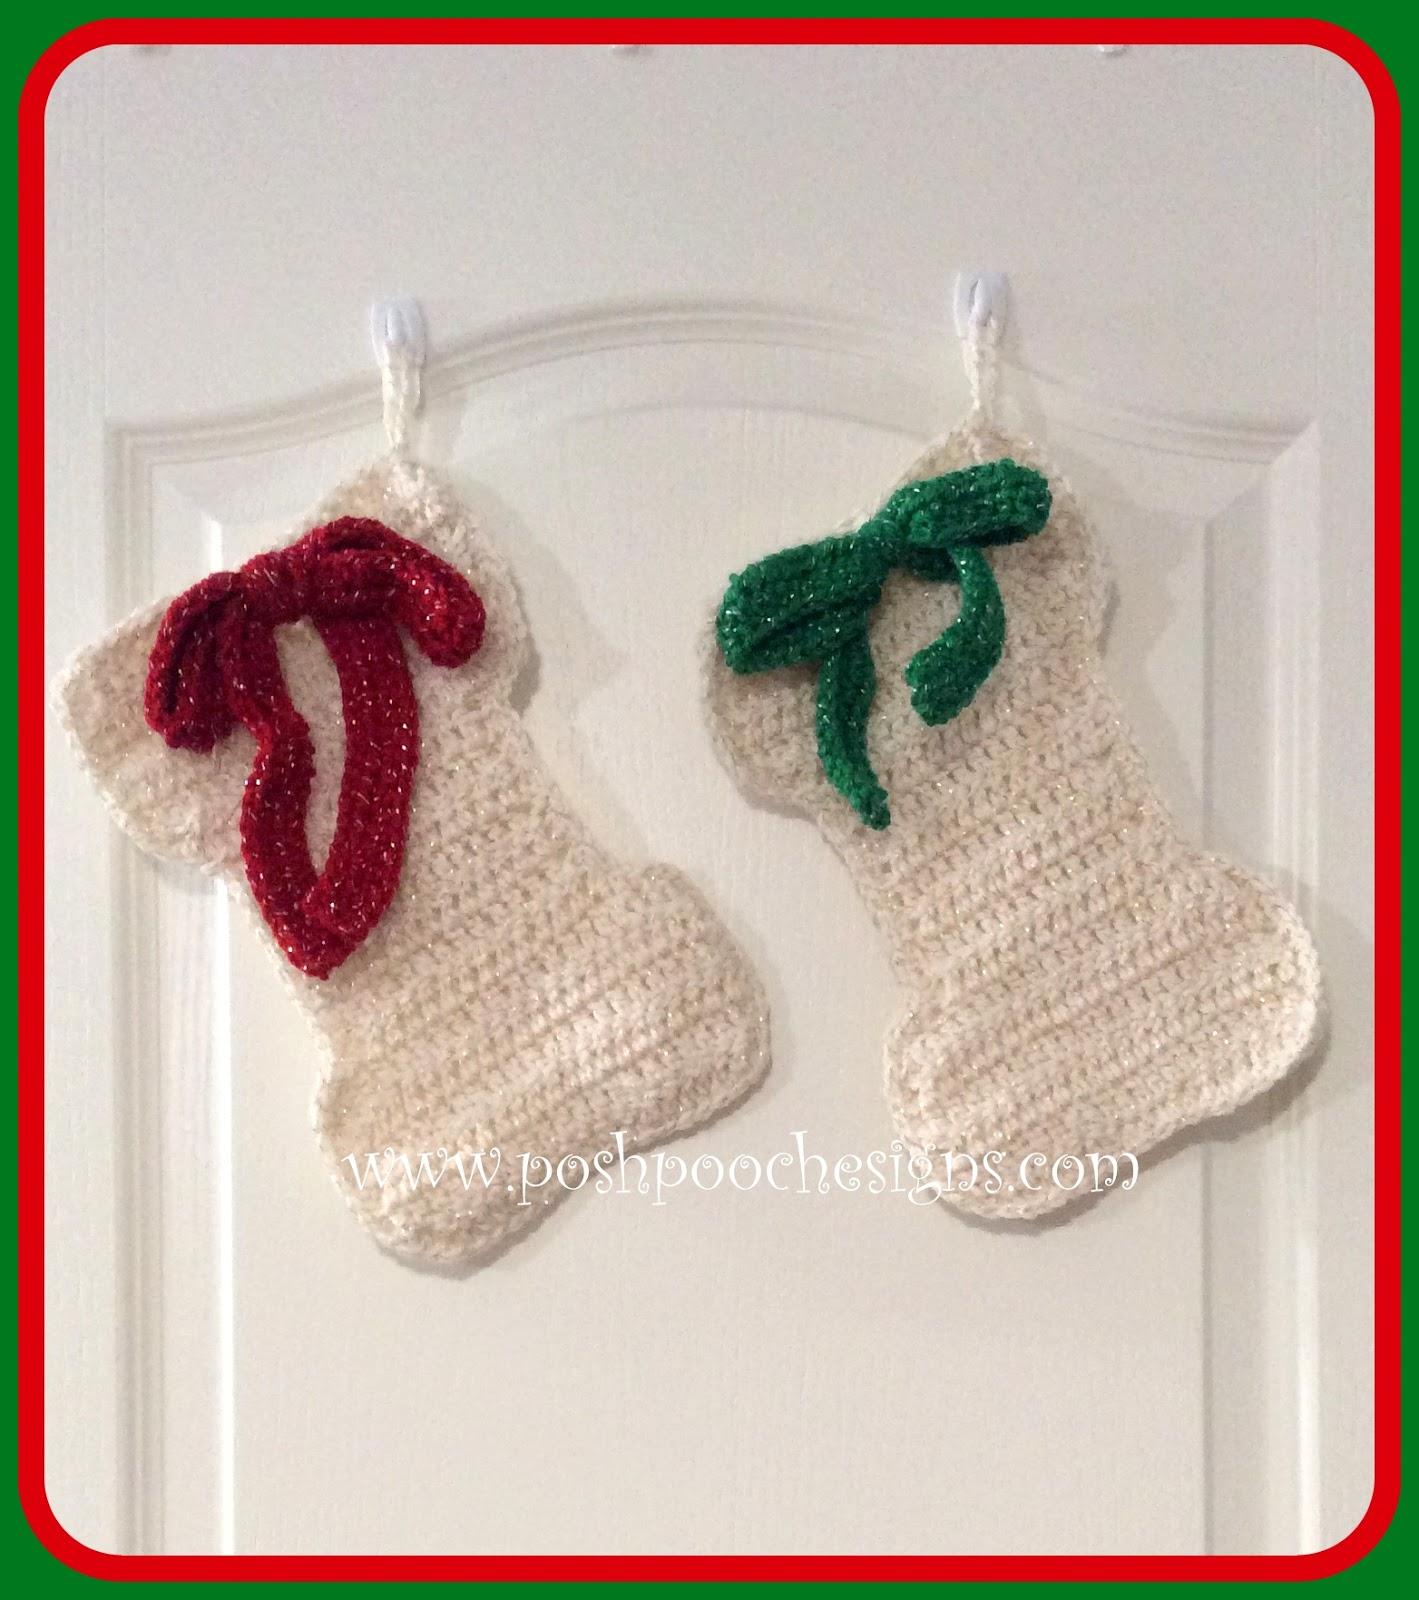 Posh Pooch Designs Dog Clothes: Dog Bone Christmas Stocking - RE ...